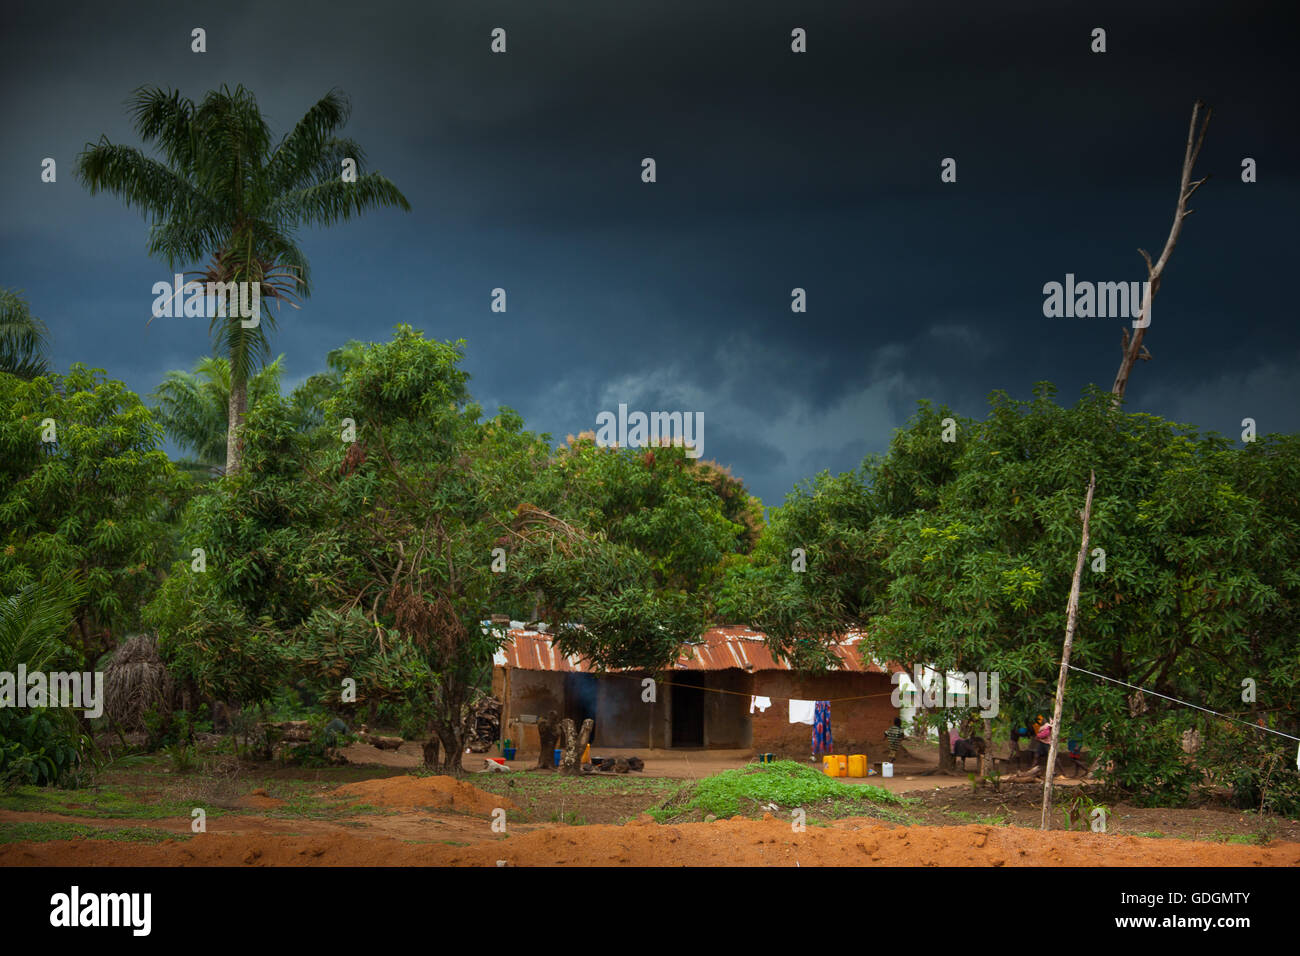 Yongoro, Sierra Leone - June 02, 2013: West Africa, the village of Yongoro in front of Freetown, rainstorm - Stock Image